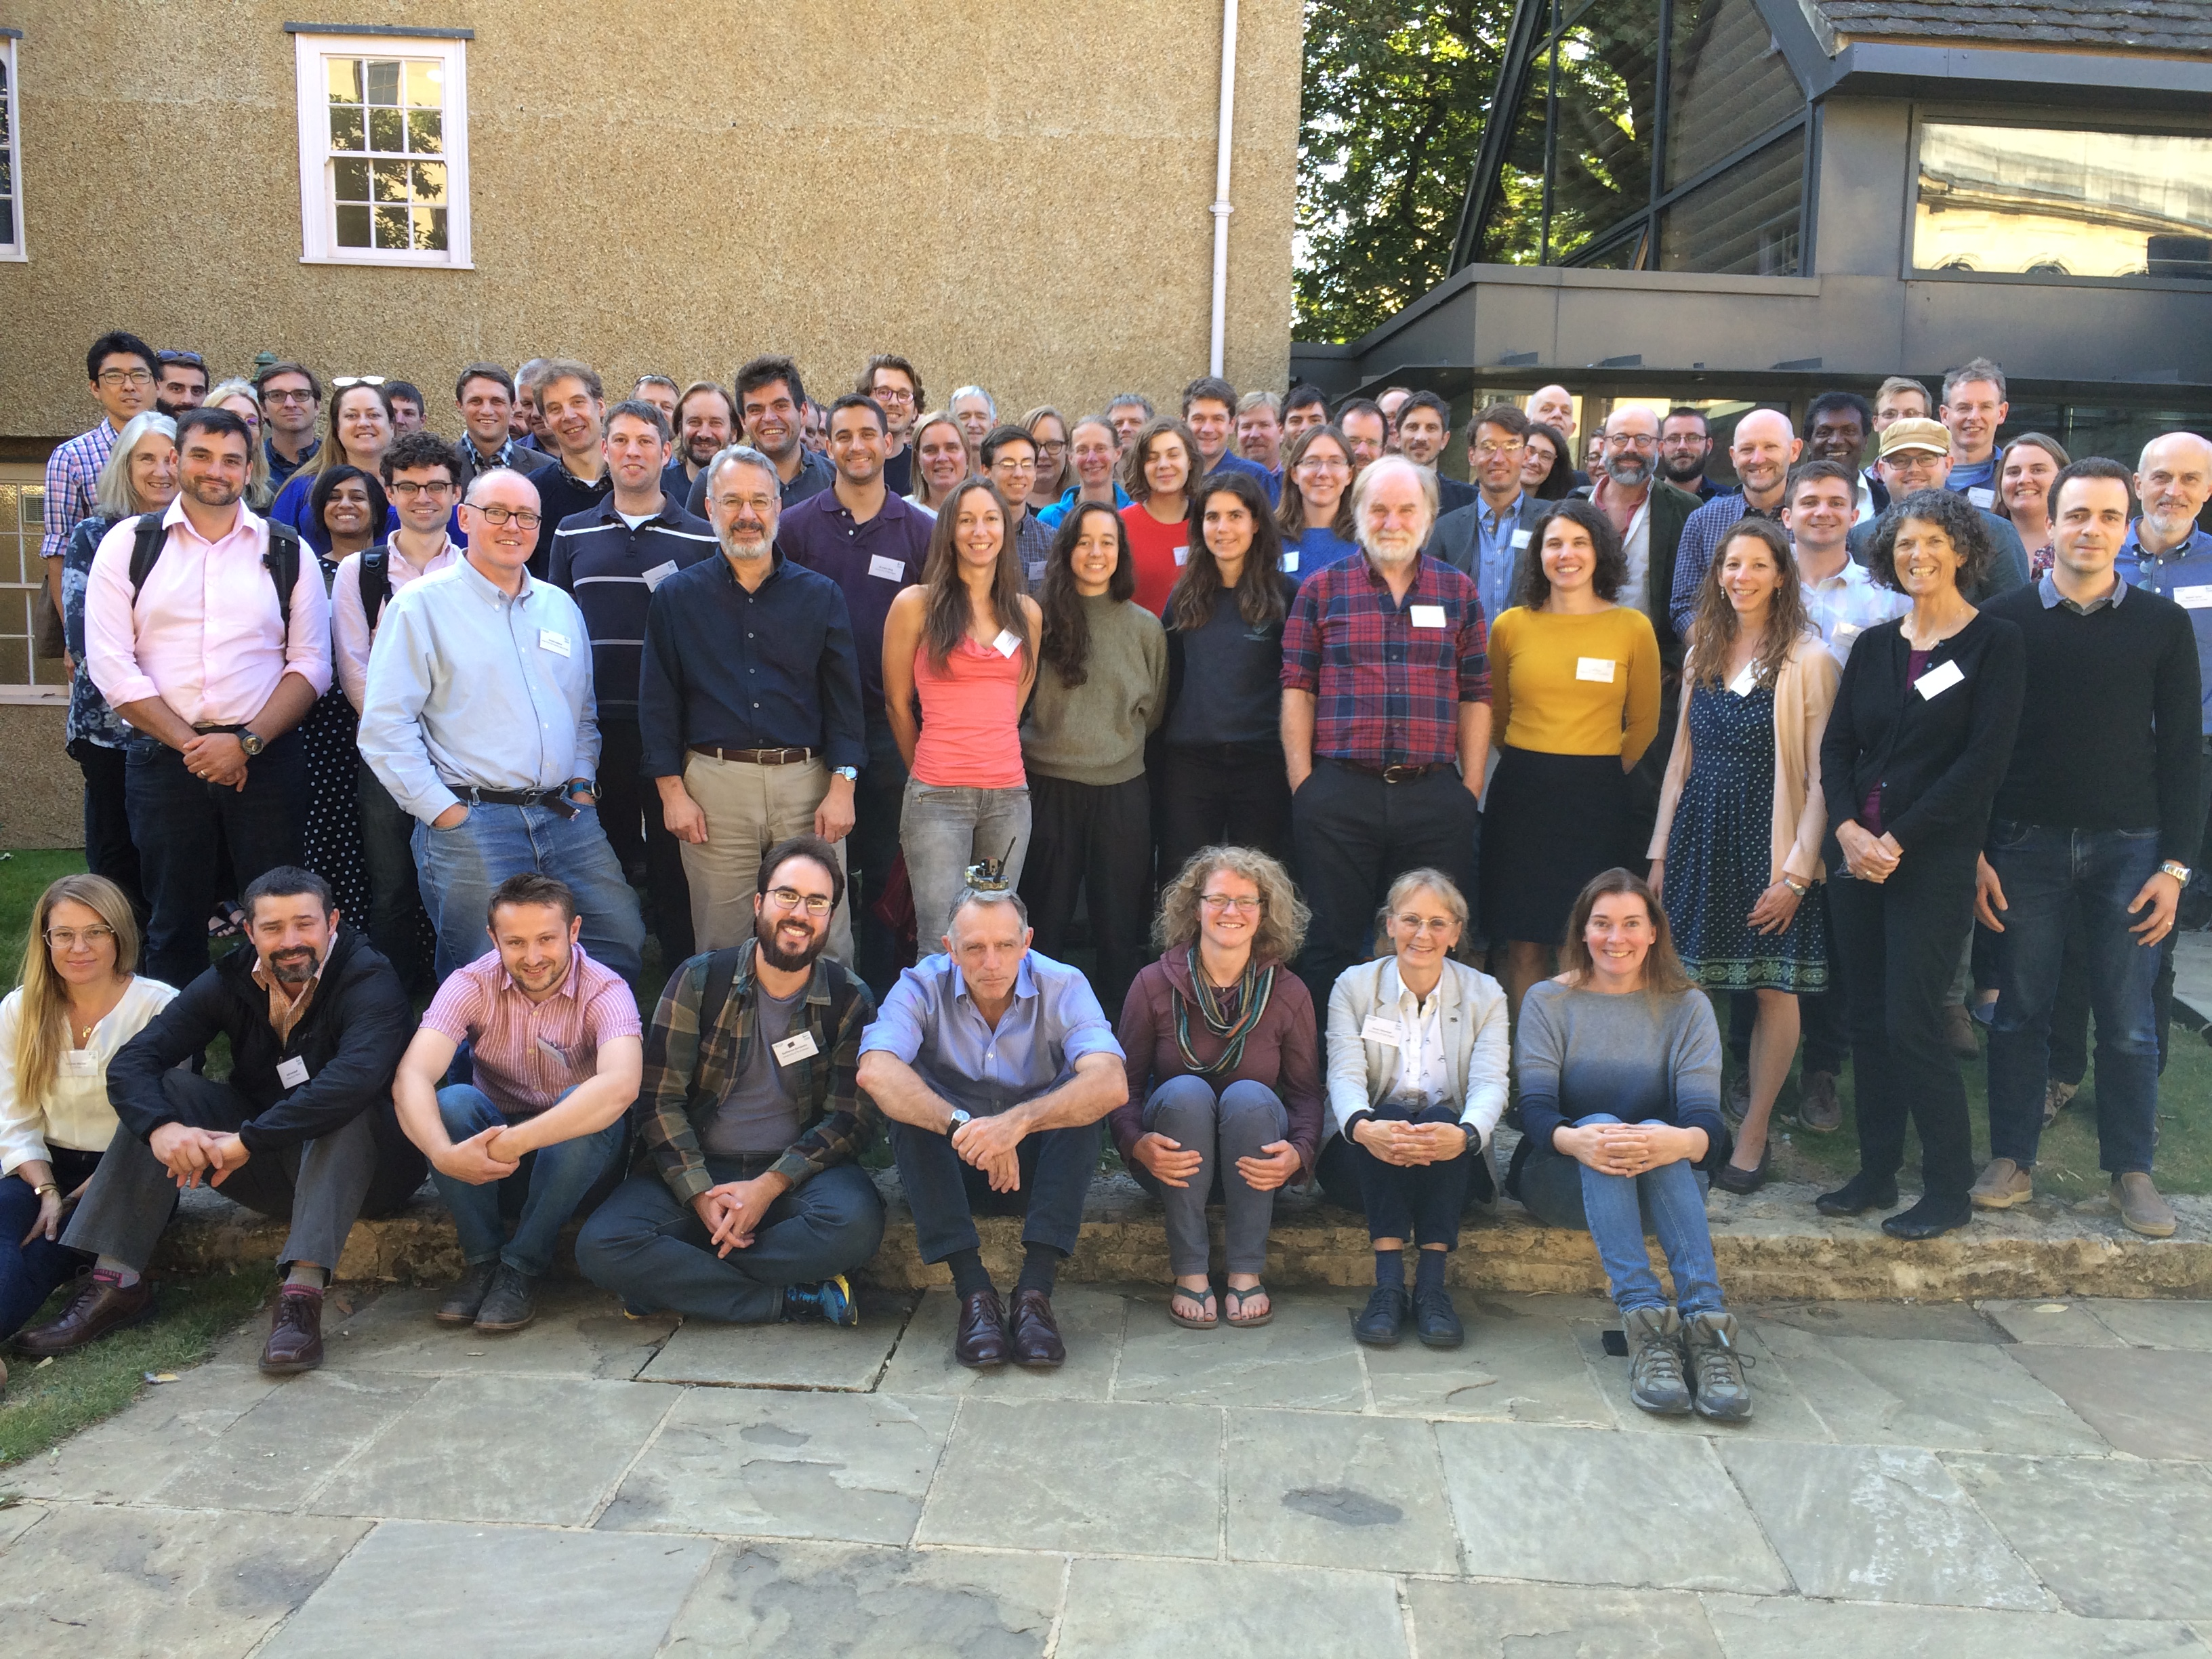 ITGC researchers and staff meet in Oxford, U.K.